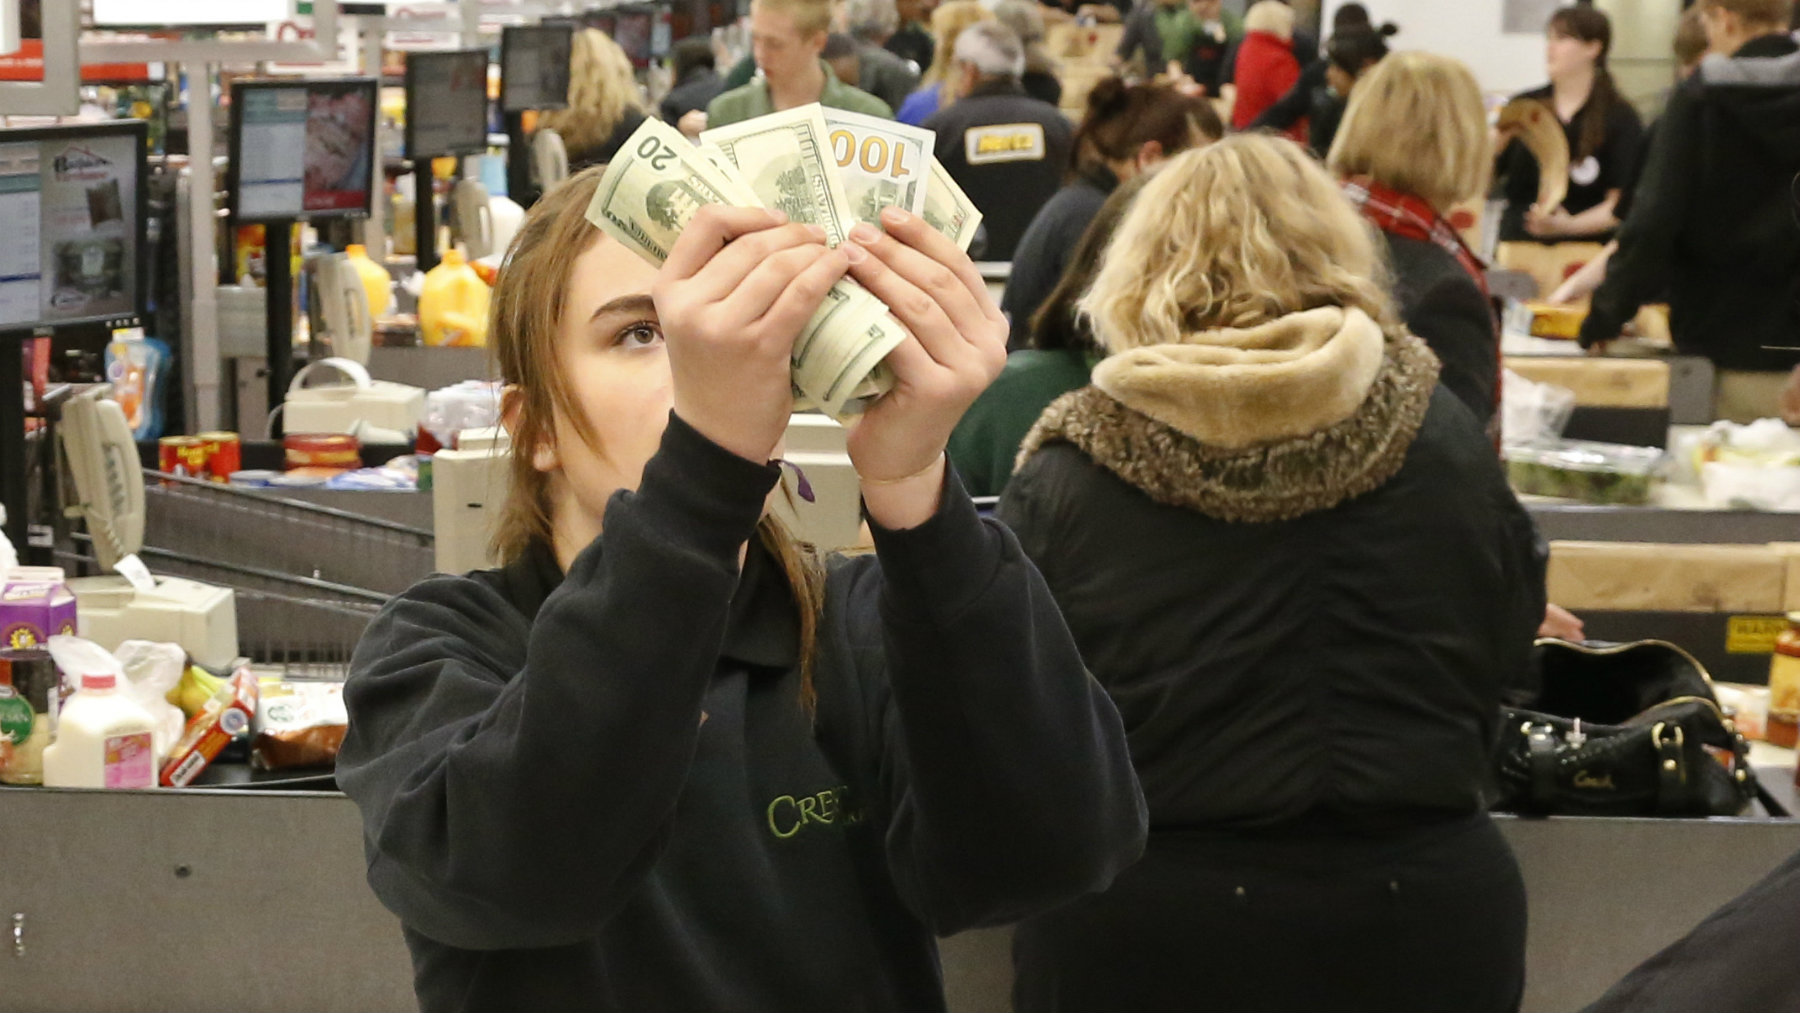 Cashier Nikki Hall checks the cash given to her at the register in the check out line at a crowded Crest Fresh Market grocery store in Edmond, Okla, Wednesday, Dec. 4, 2013. A winter storm expected to plow through Oklahoma starting Thursday. (AP Photo/Sue Ogrocki)